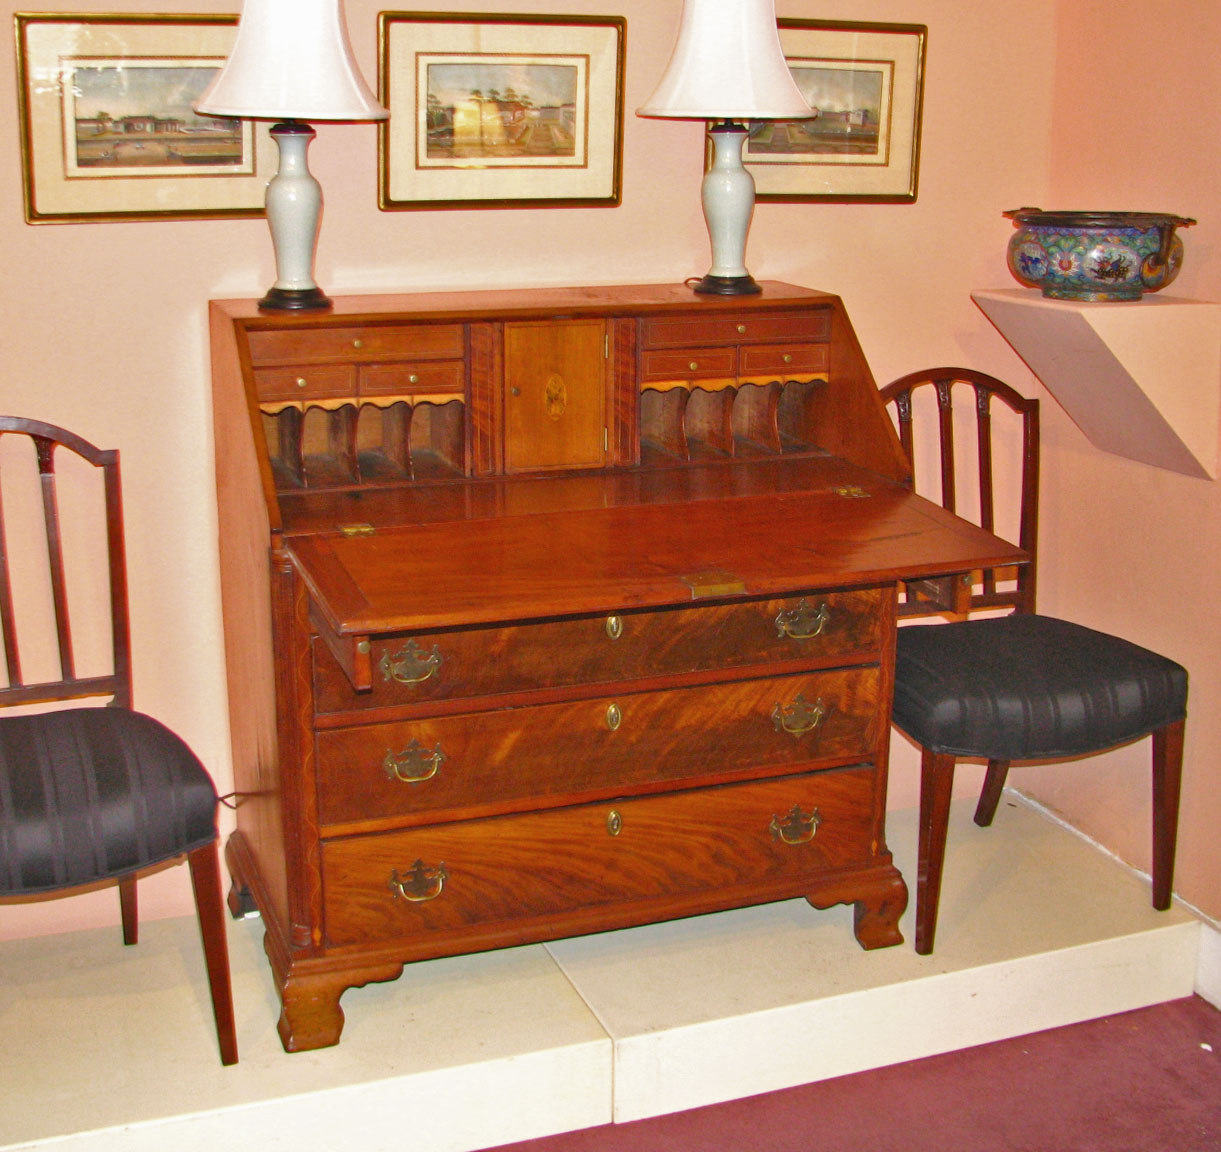 Slant front desk - Pennsylvania Slant Front Desk C.1790 DUBEY'S ART & ANTIQUES